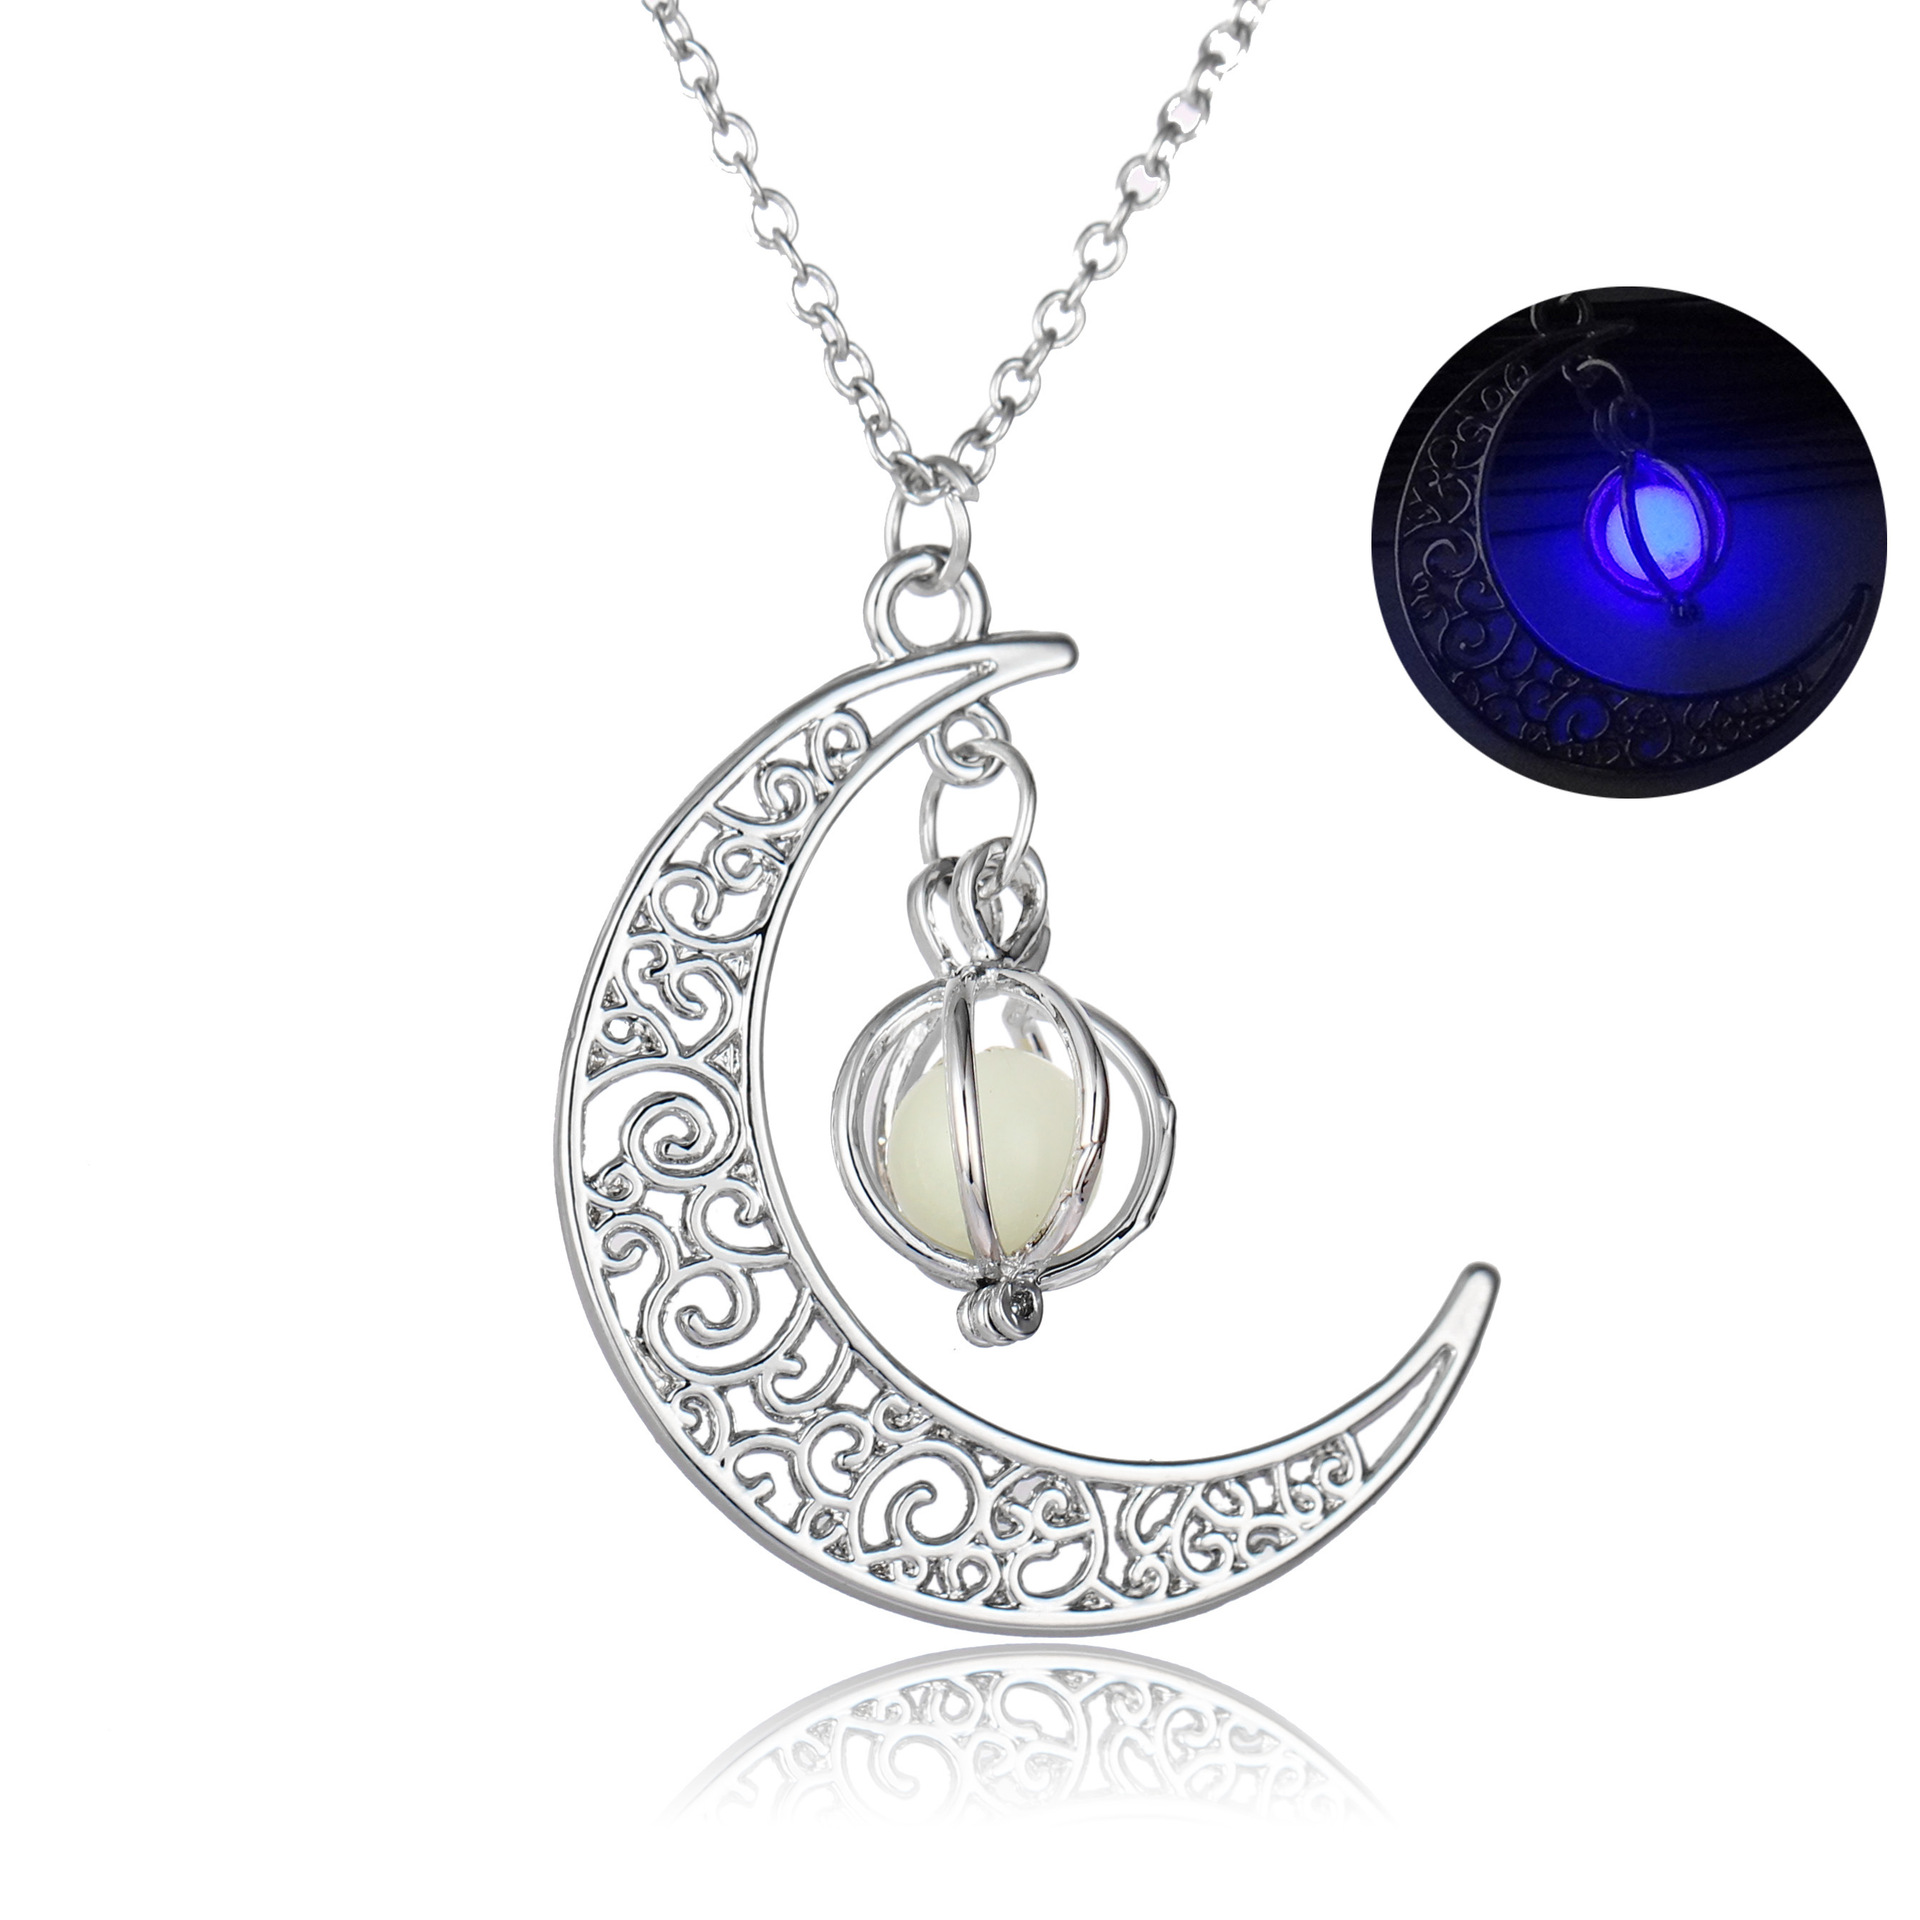 Halloween Decorations Gifts Ornaments Christmas Gifts Glowing Moon Pumpkin Creative Pendant Sky Blue Luminous Women Necklace  NY355_Purple